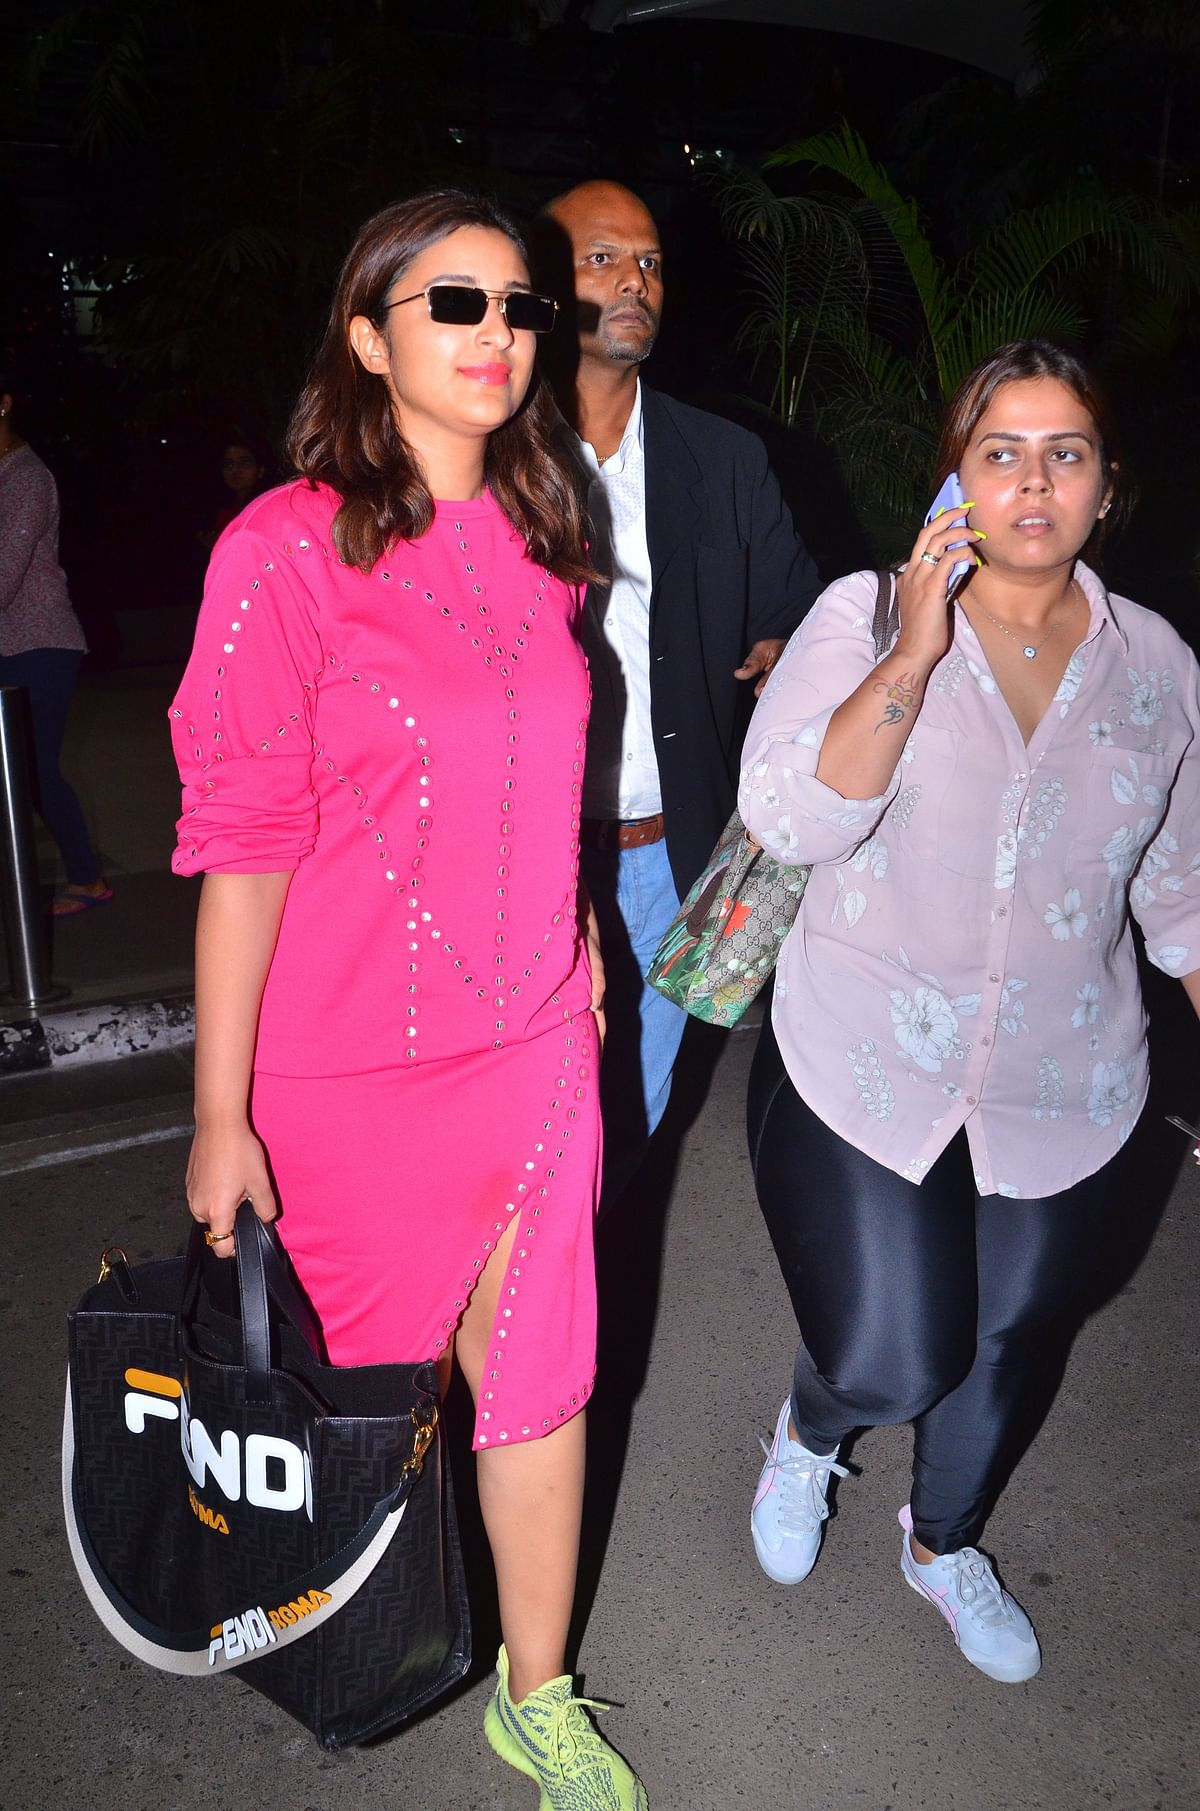 Parineeti Chopra uses Rs 1.3 Lakh Fendi bag to cover her eyes from paparazzi flash